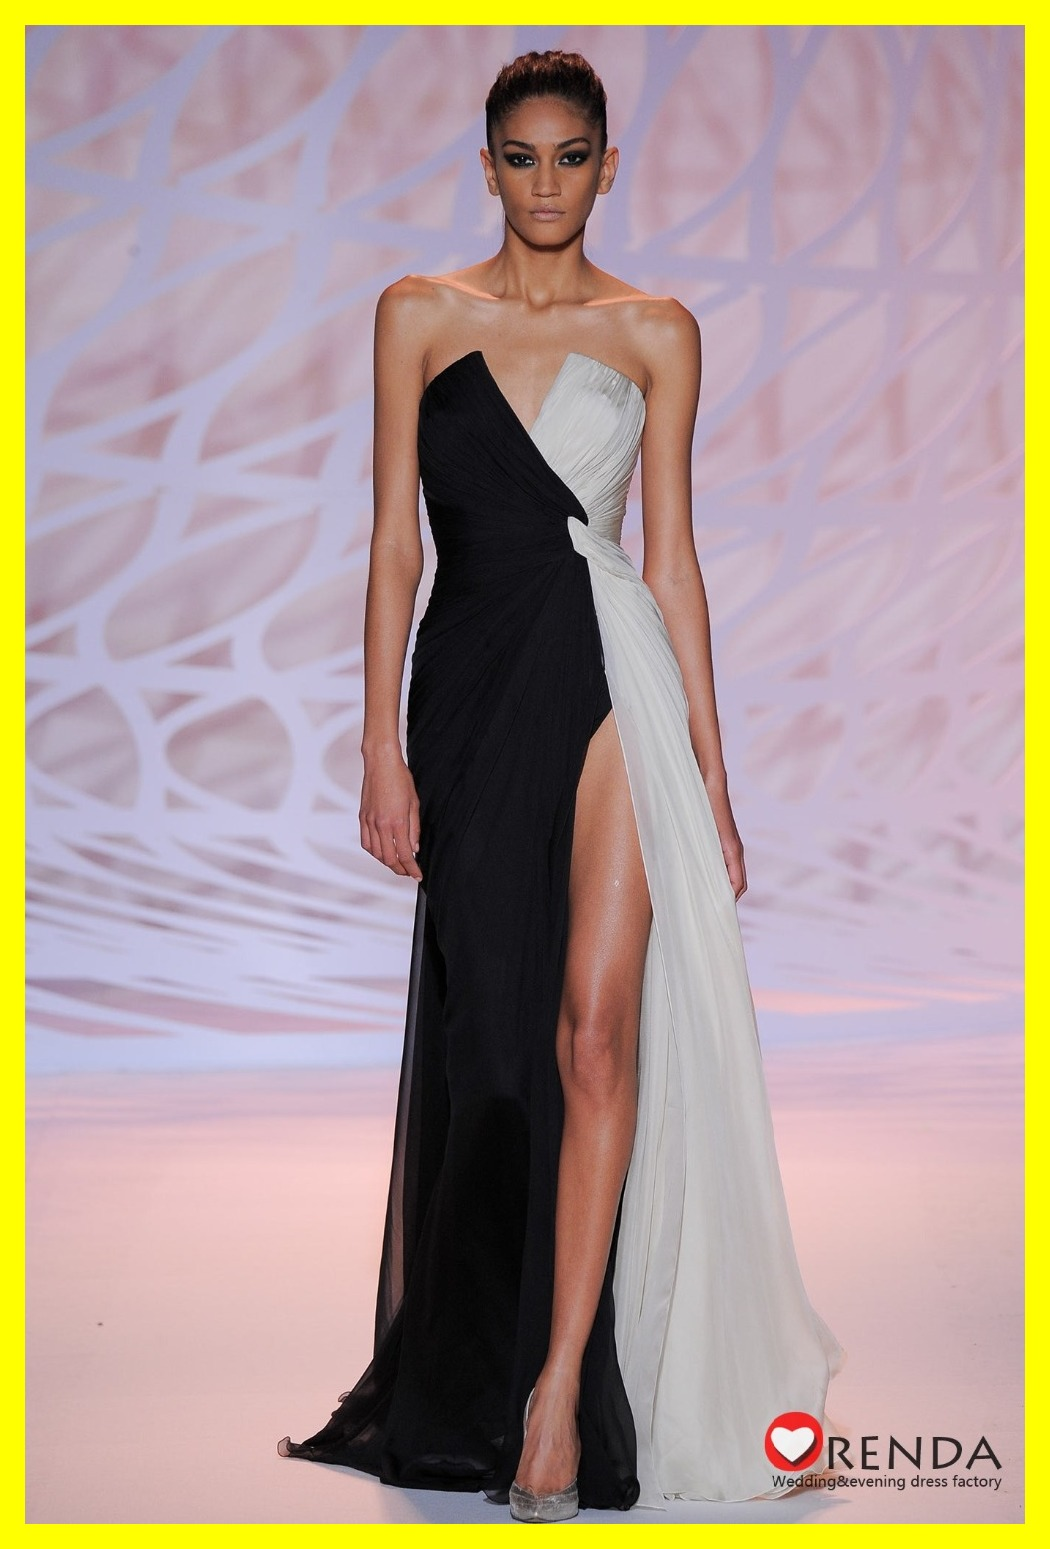 Wedding Dresses Next Day Delivery Uk